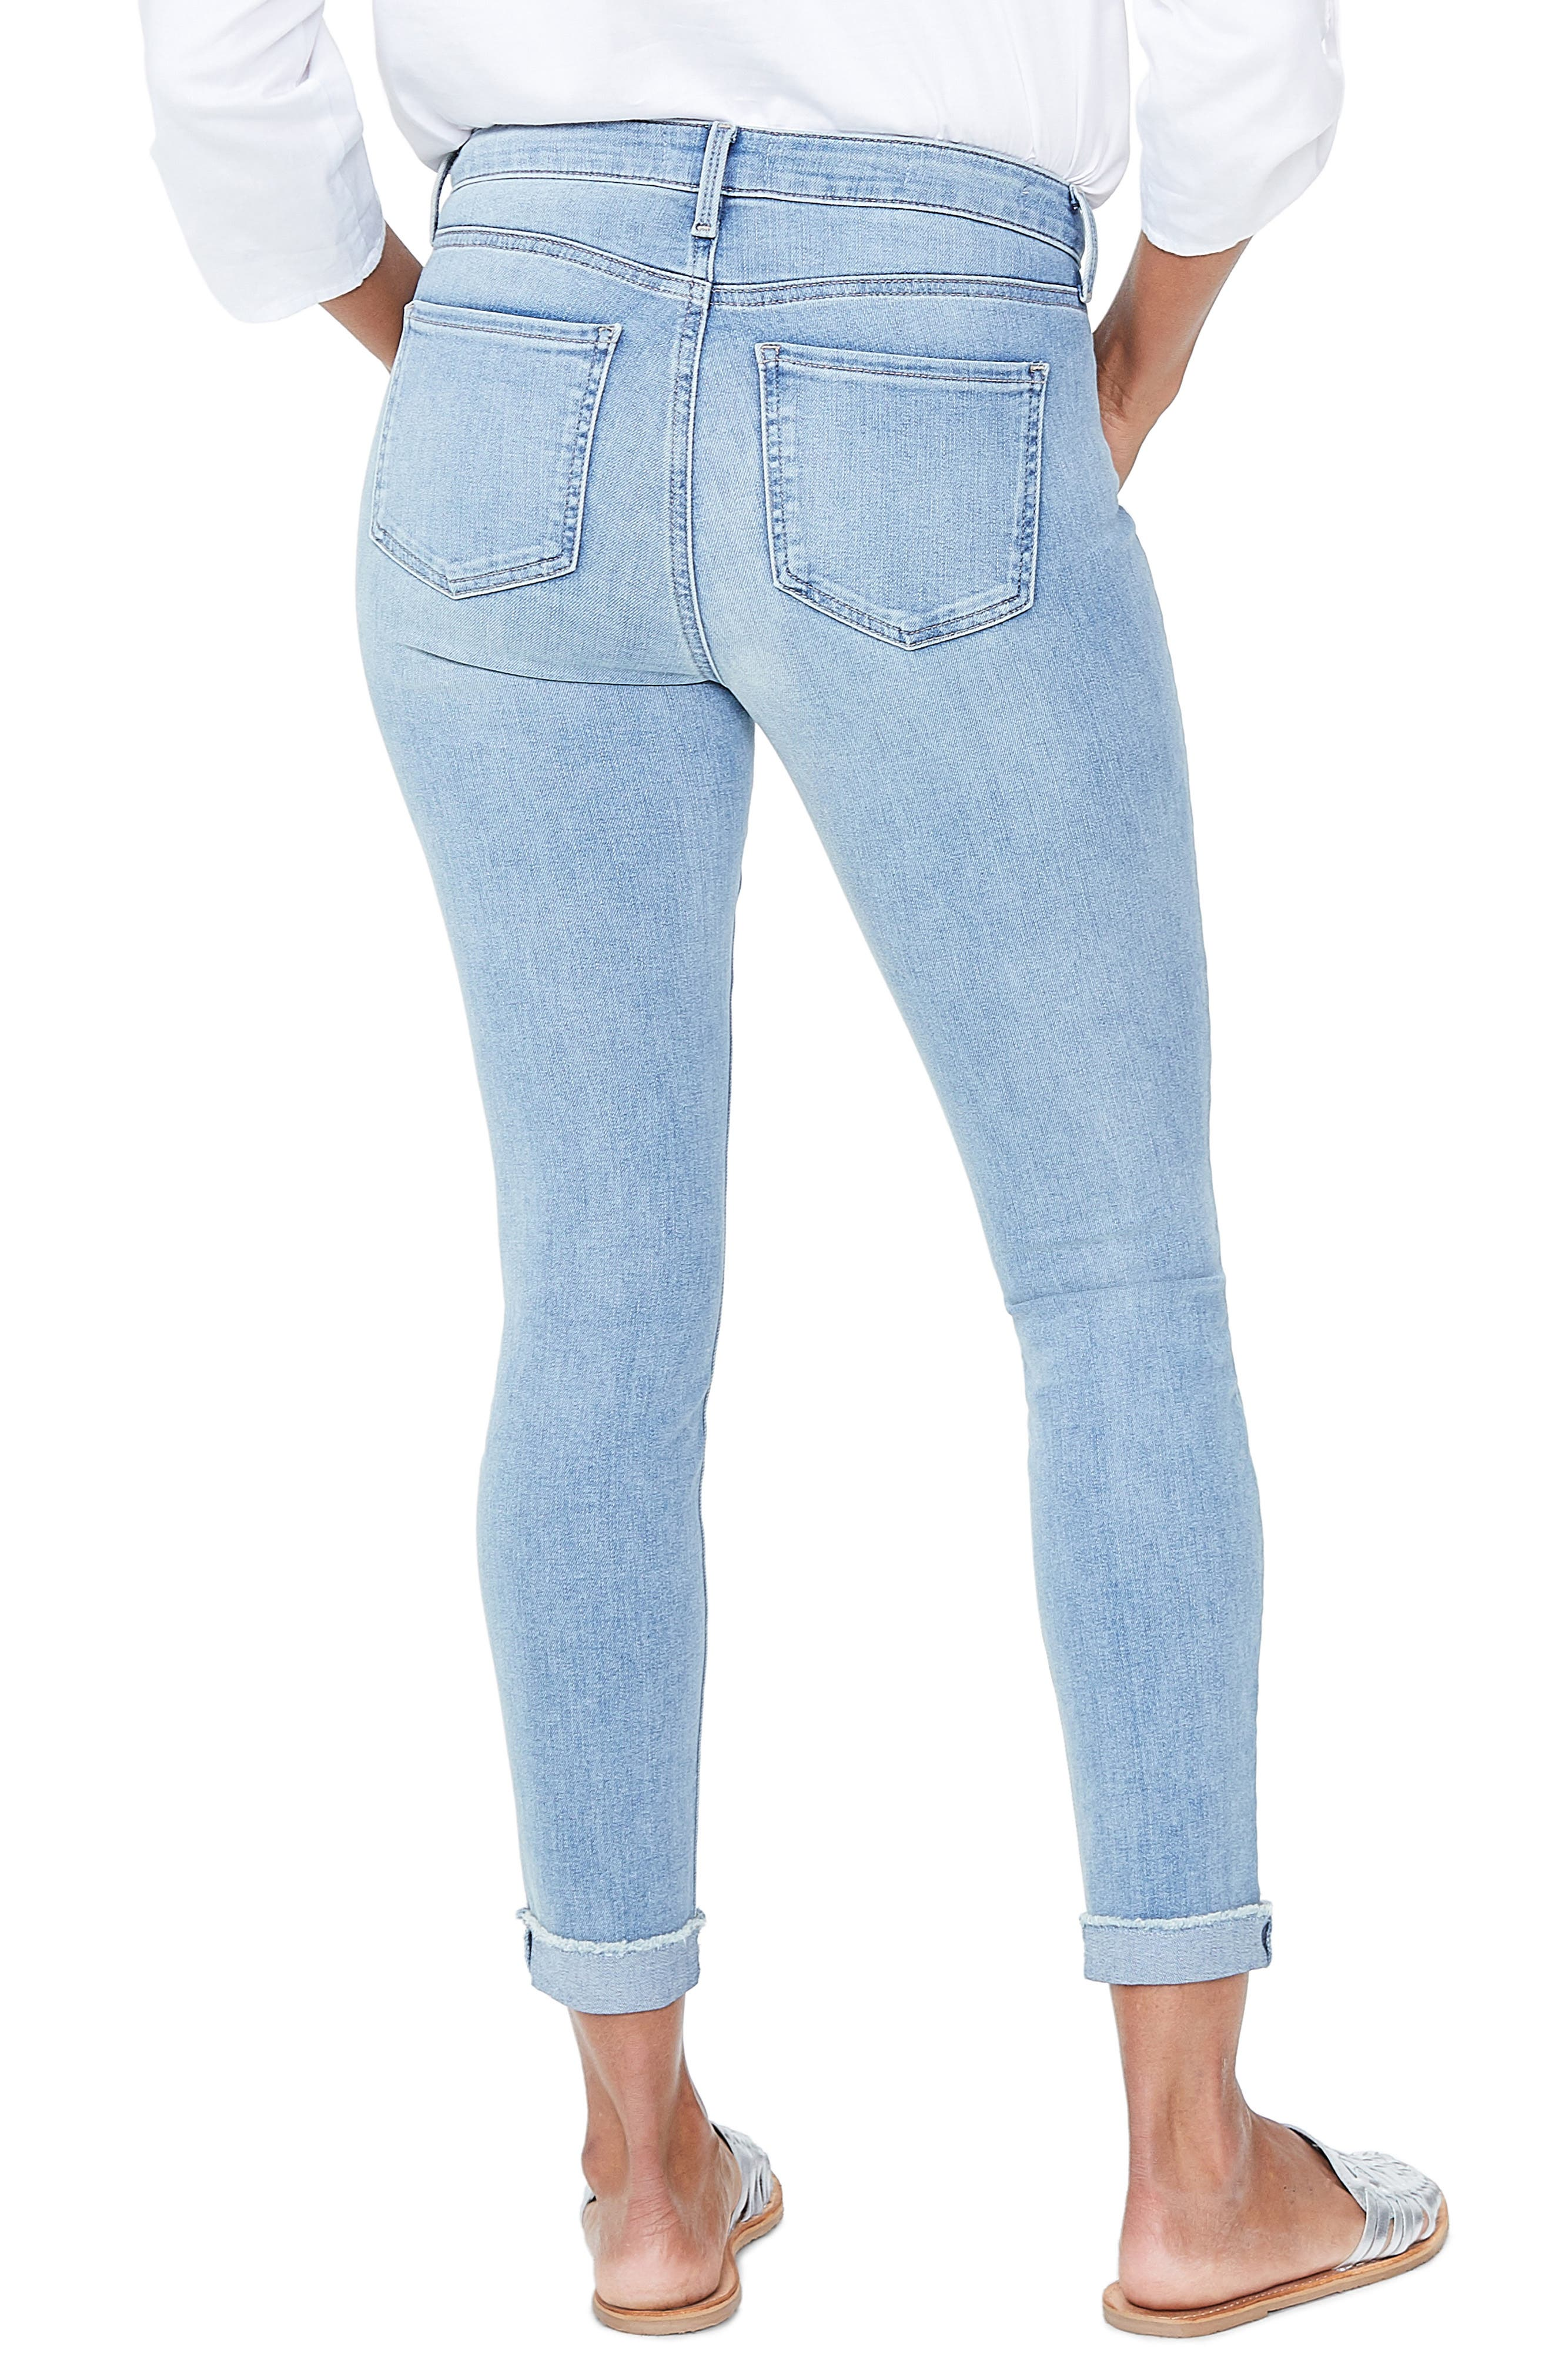 Ami Cuffed Ankle Skinny Jeans,                             Alternate thumbnail 2, color,                             DREAMSTATE